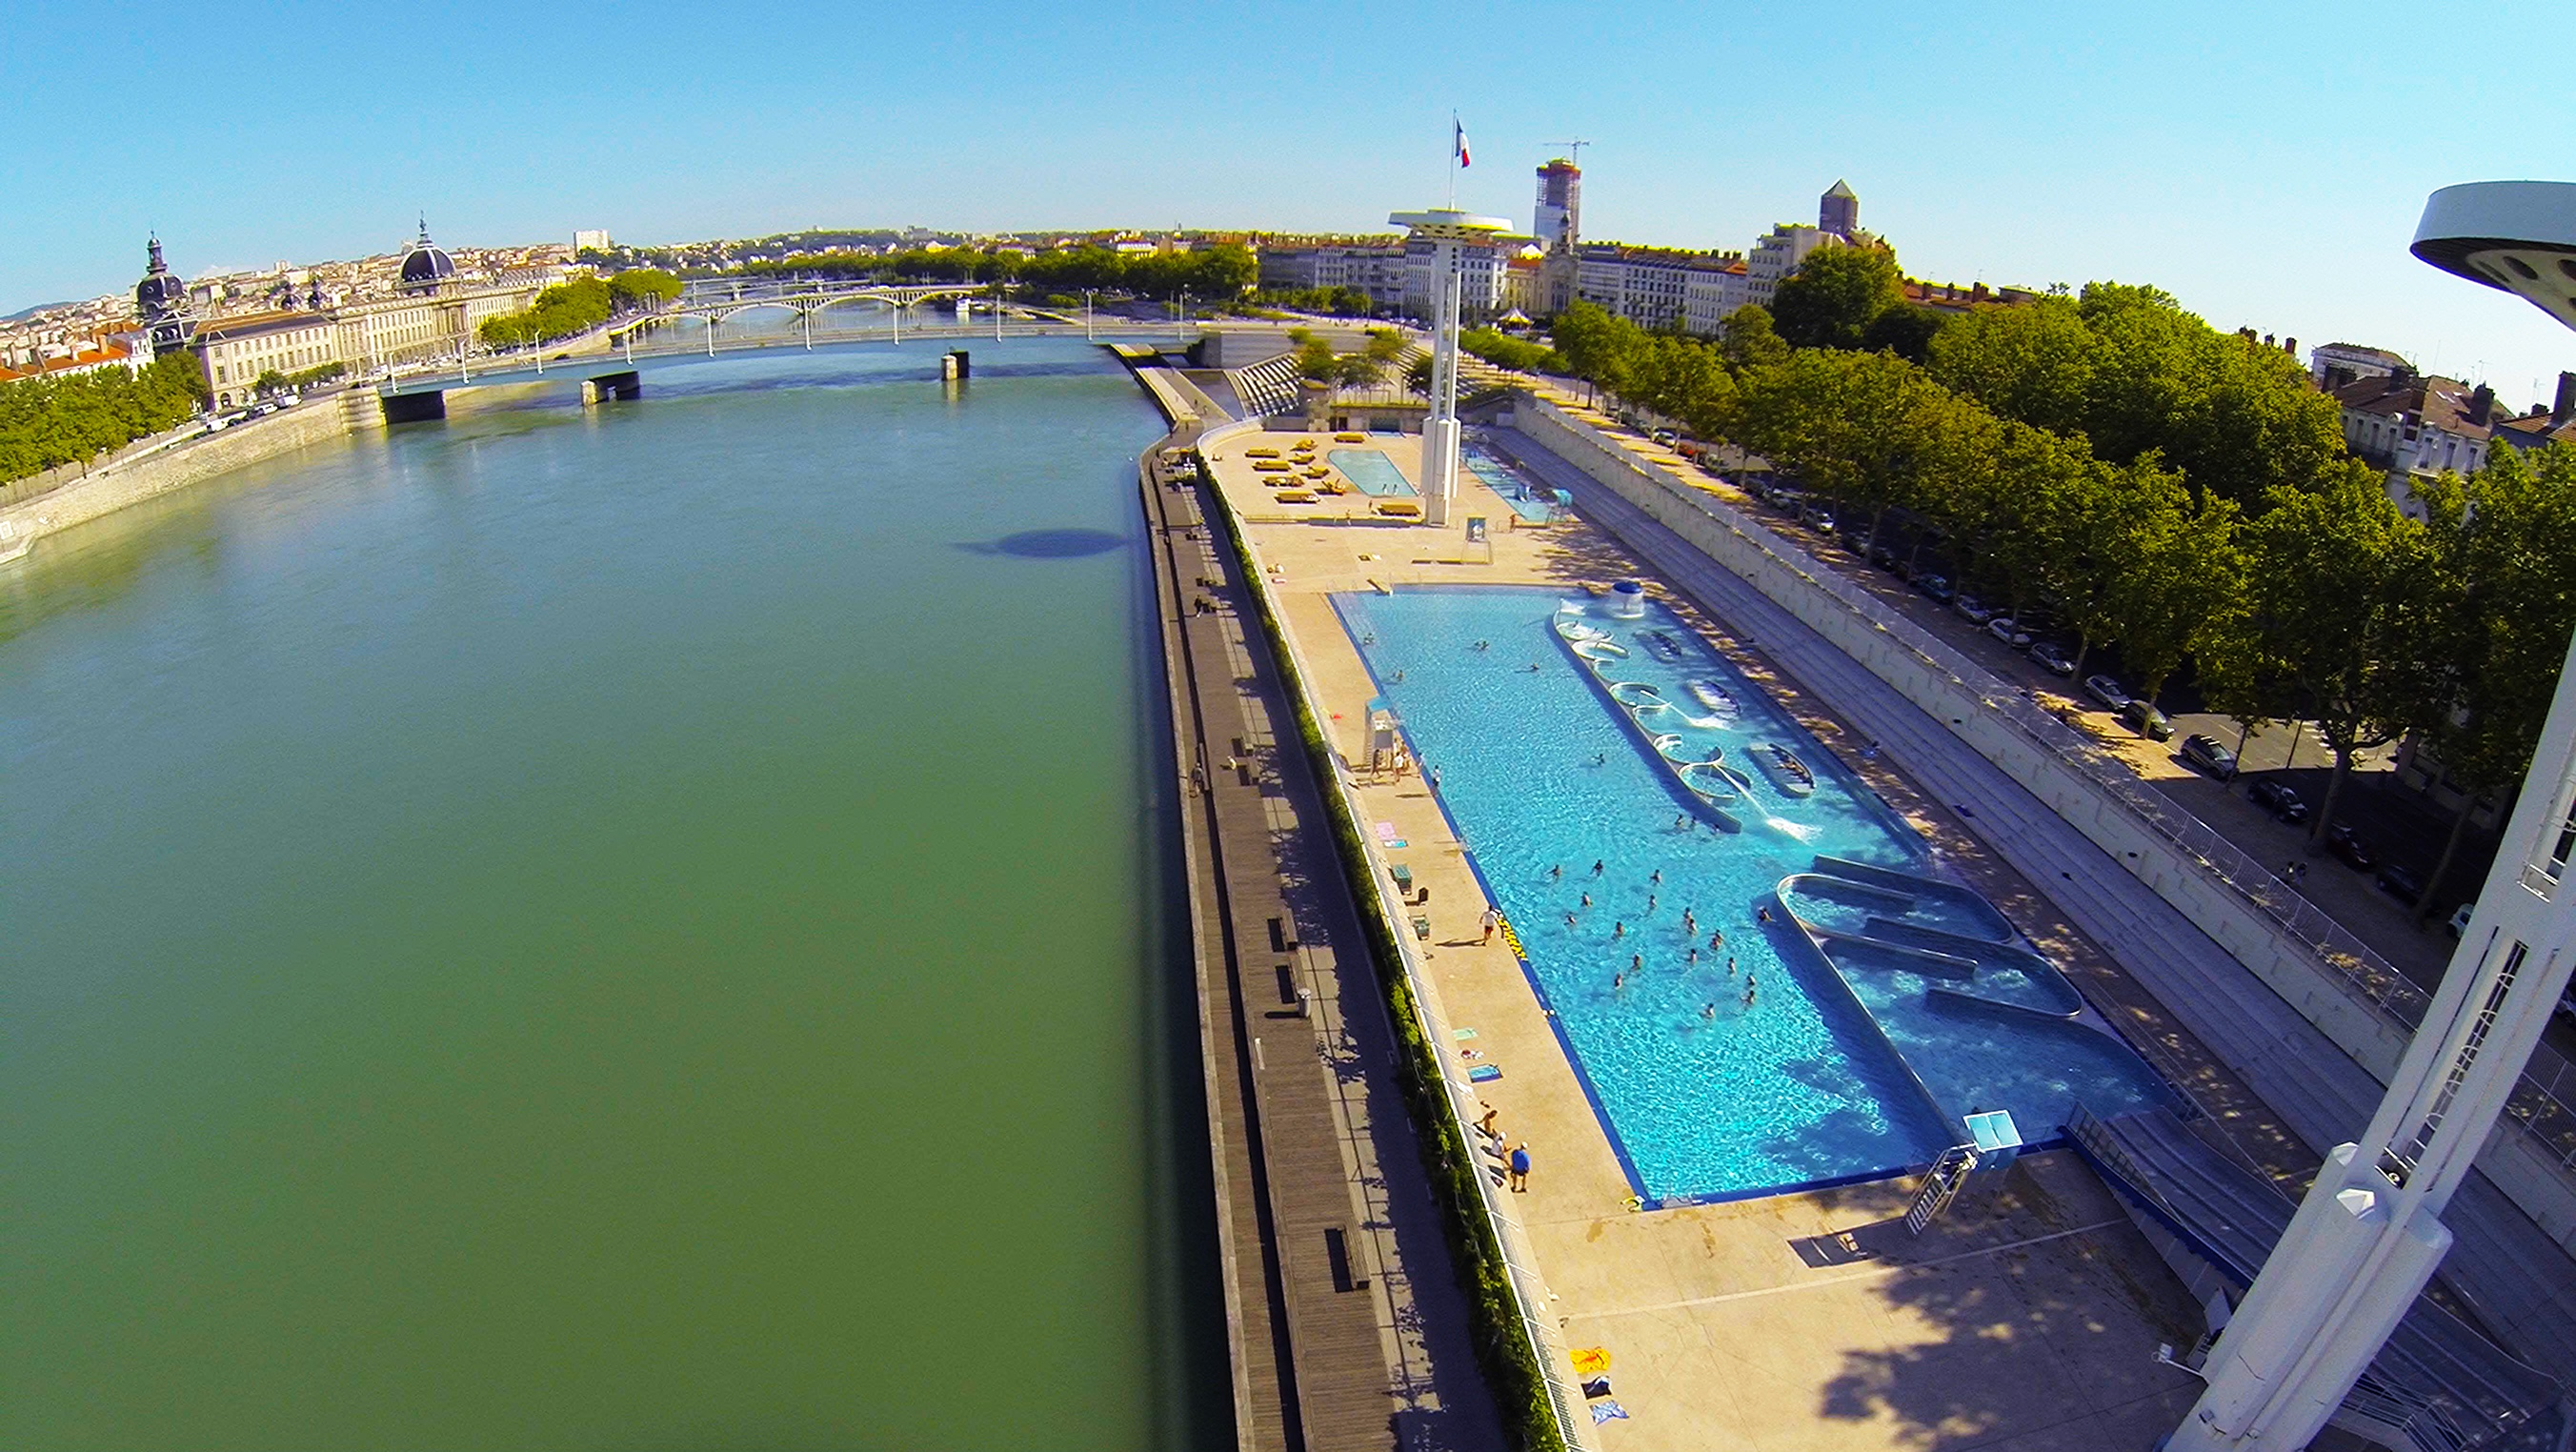 Piscine du rhone dronestagram for Piscine 2014 lyon